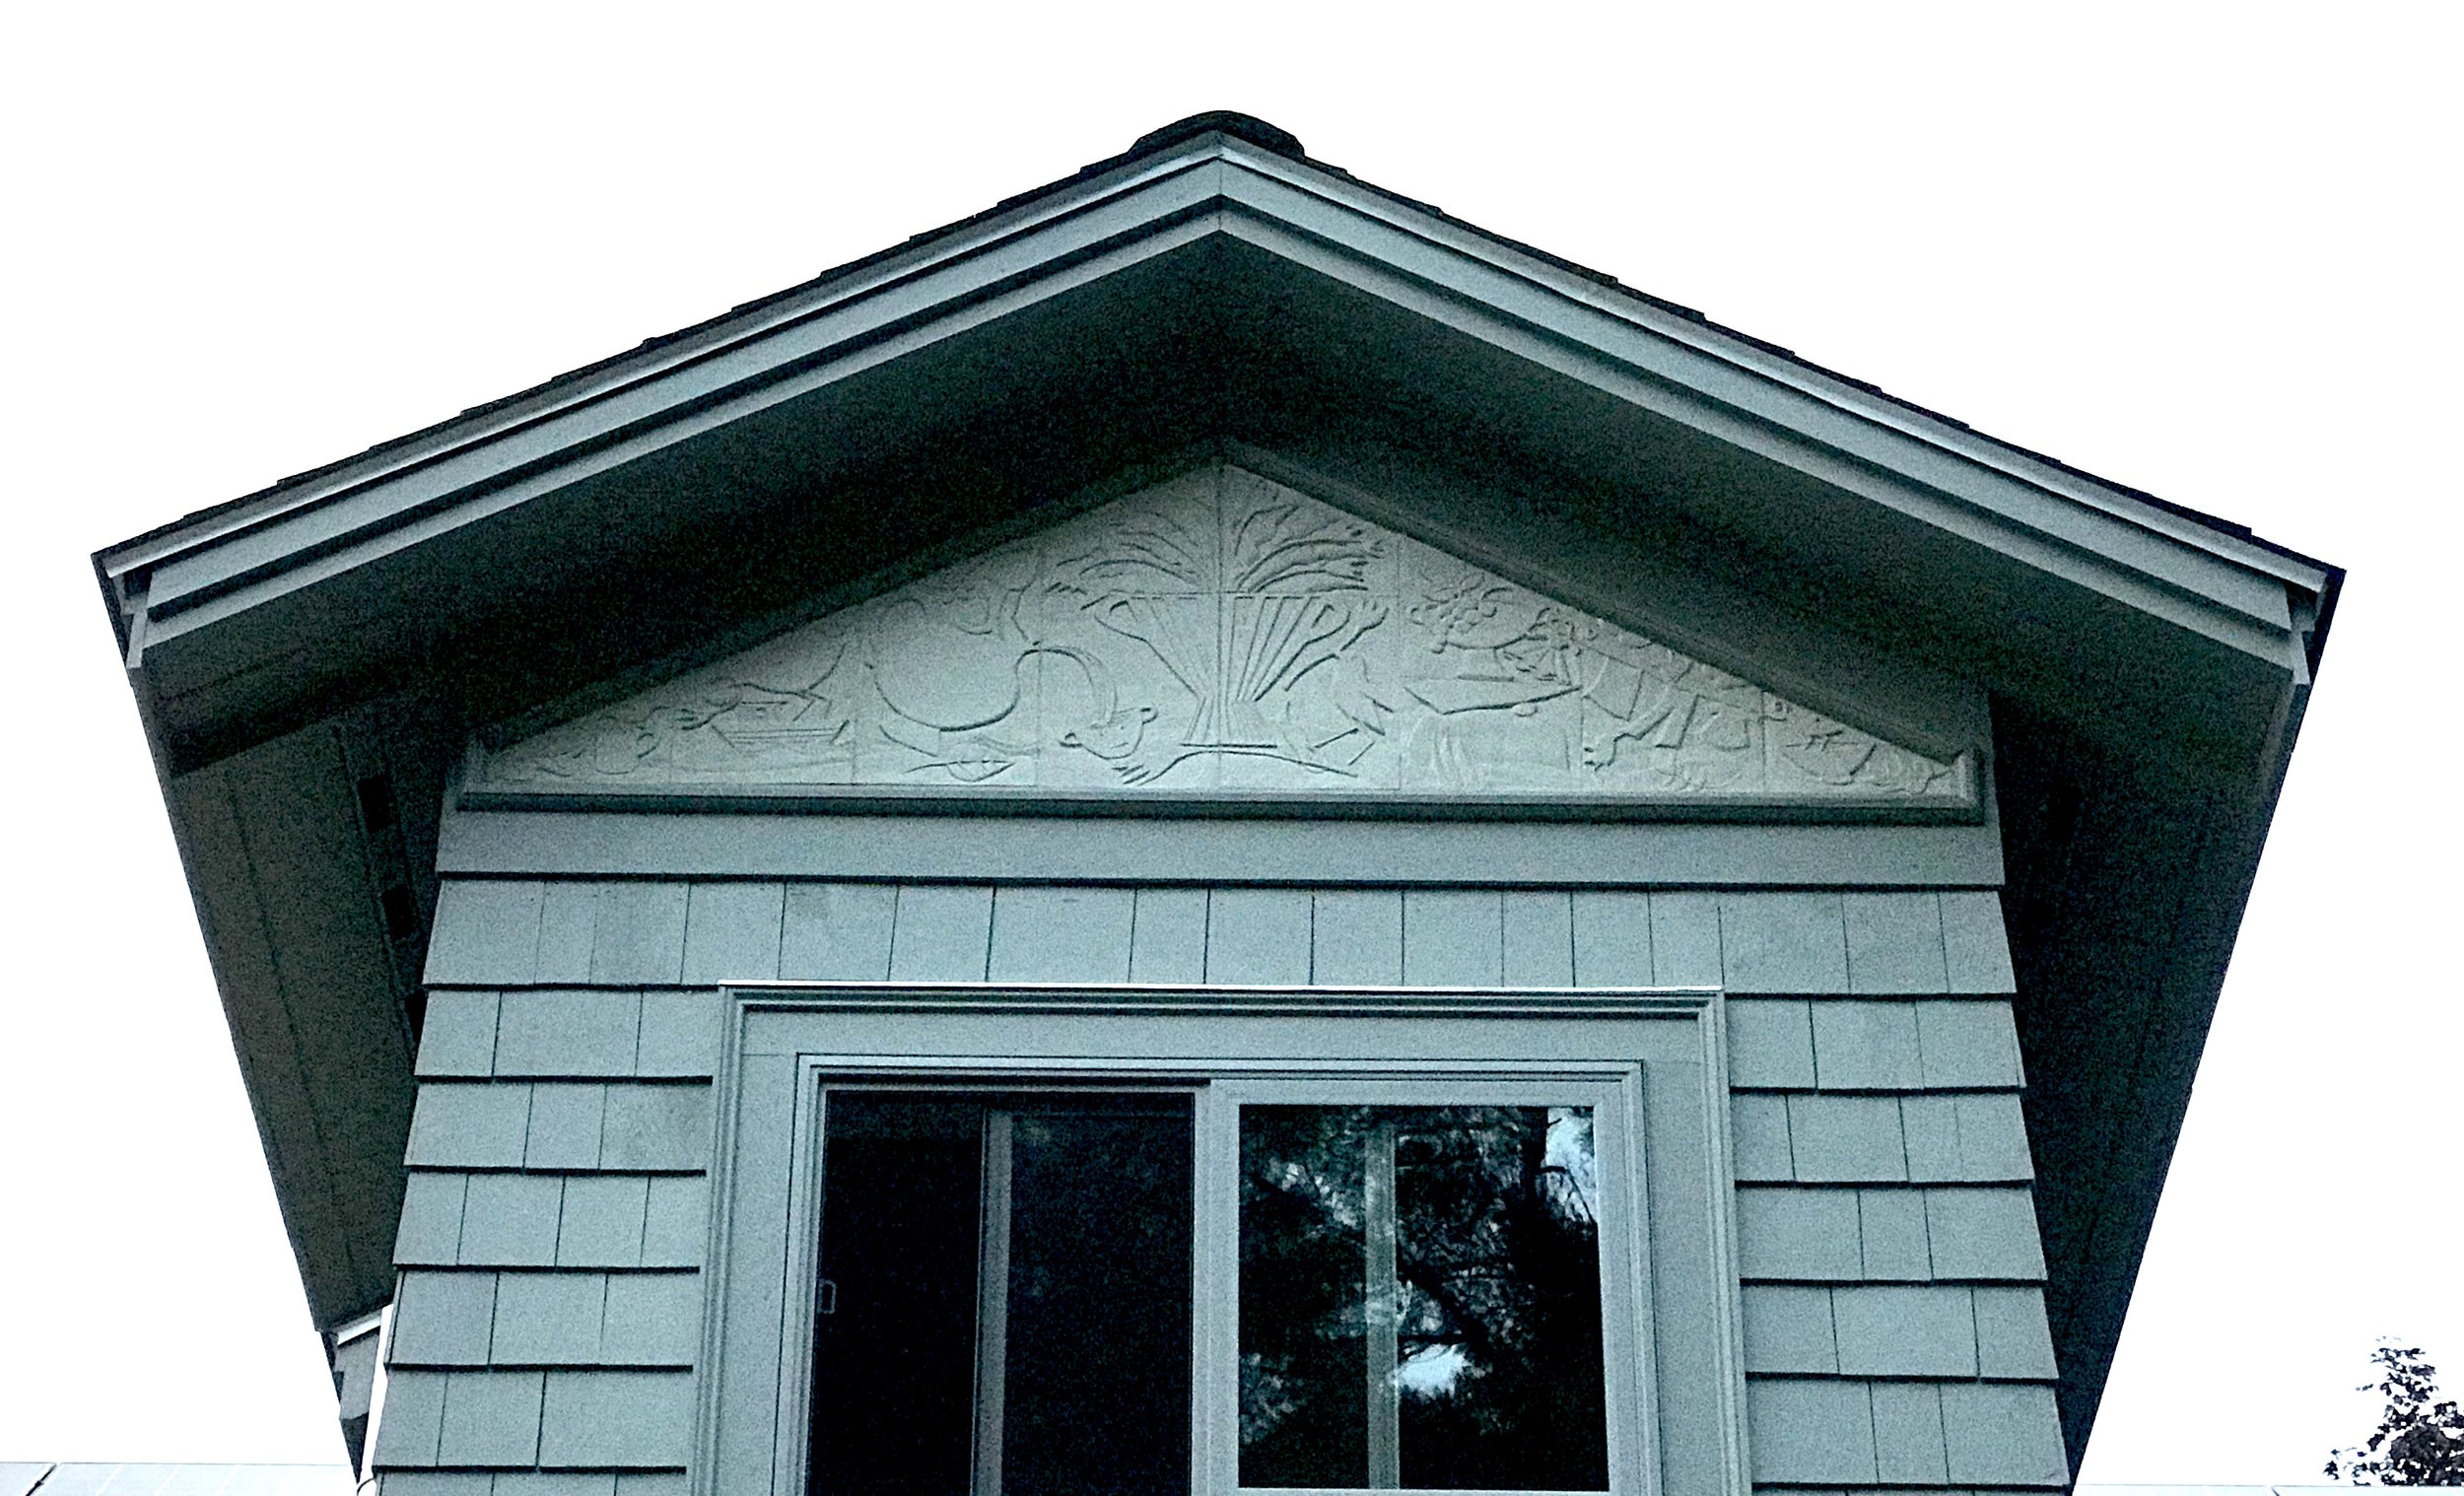 """This is an image of the finished ceramic pediment on our bathroom edition. The change from the last image posted here is the dramatic wooden framing.  It has been fun to live with this piece. It was a good experience for many reasons. This isn't the first time we made a piece that required a lot of attention to math and calculating shrinkage but it was very satisfying, when the piece was completed to know that it """"fit"""" the required size. We also hemmed and hawed about whether we should glaze the piece or not. One piece cannot do everything so we are both glad that we opted for """"subtle"""" rather than a dramatic color, surface or contrast of color. One thing that is worth thinking about is scale. While the images seem big up close, they are very small and detailed when seen from a distance. making greater allowances for the Size vs. Distance relationship may be considered differently the next time around.  The most """"telling"""" part of all of this will be Winter. We will watch the piece carefully to see how it weathers. We do live in New England. The generous overhang should alleviate almost any problem - it prevents any rain from coming in - but one can never tell."""